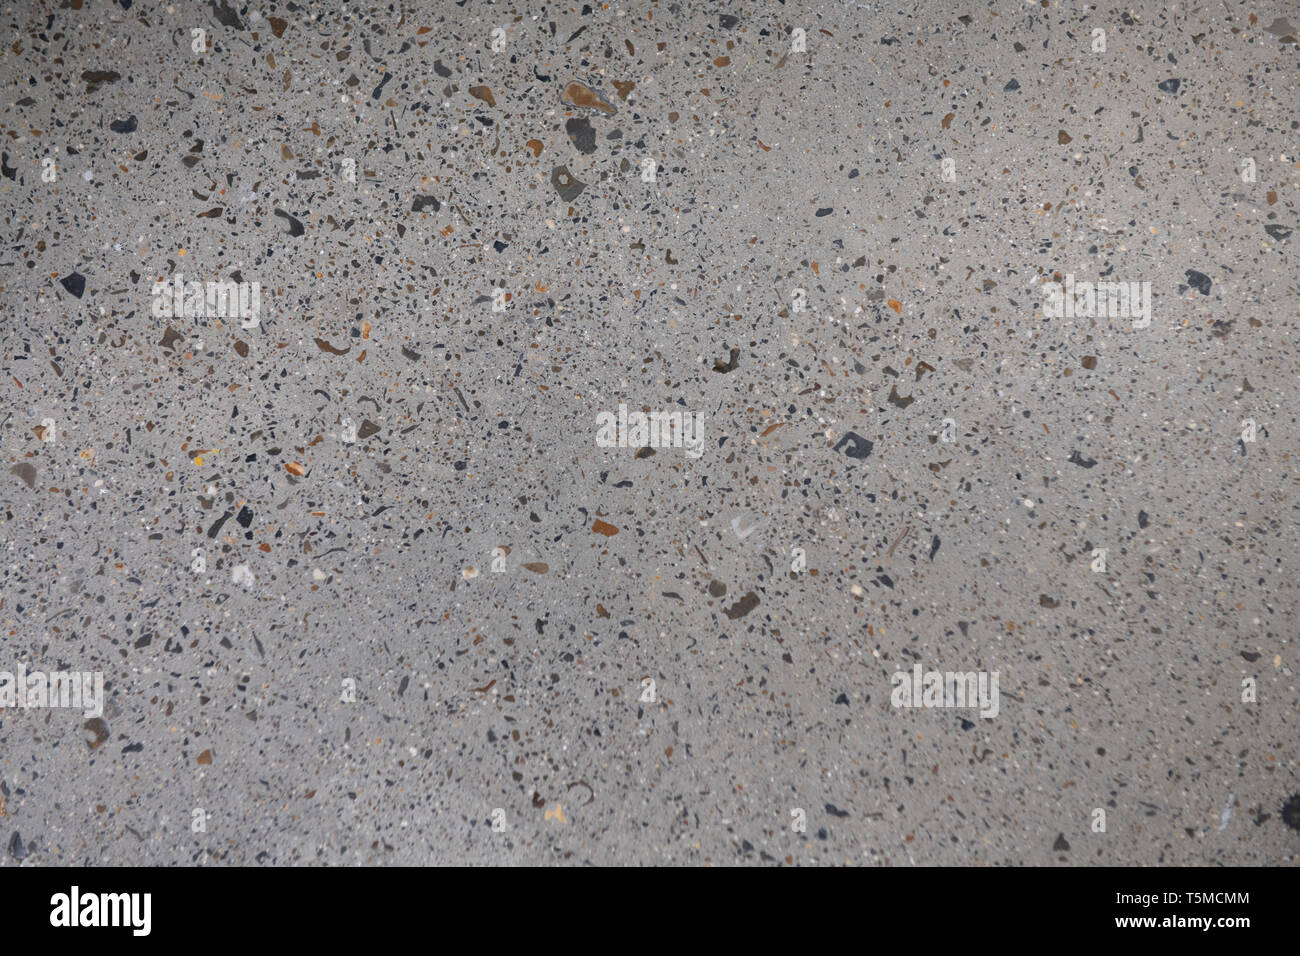 Ground Concrete floor inside building with polished gravels. - Stock Image